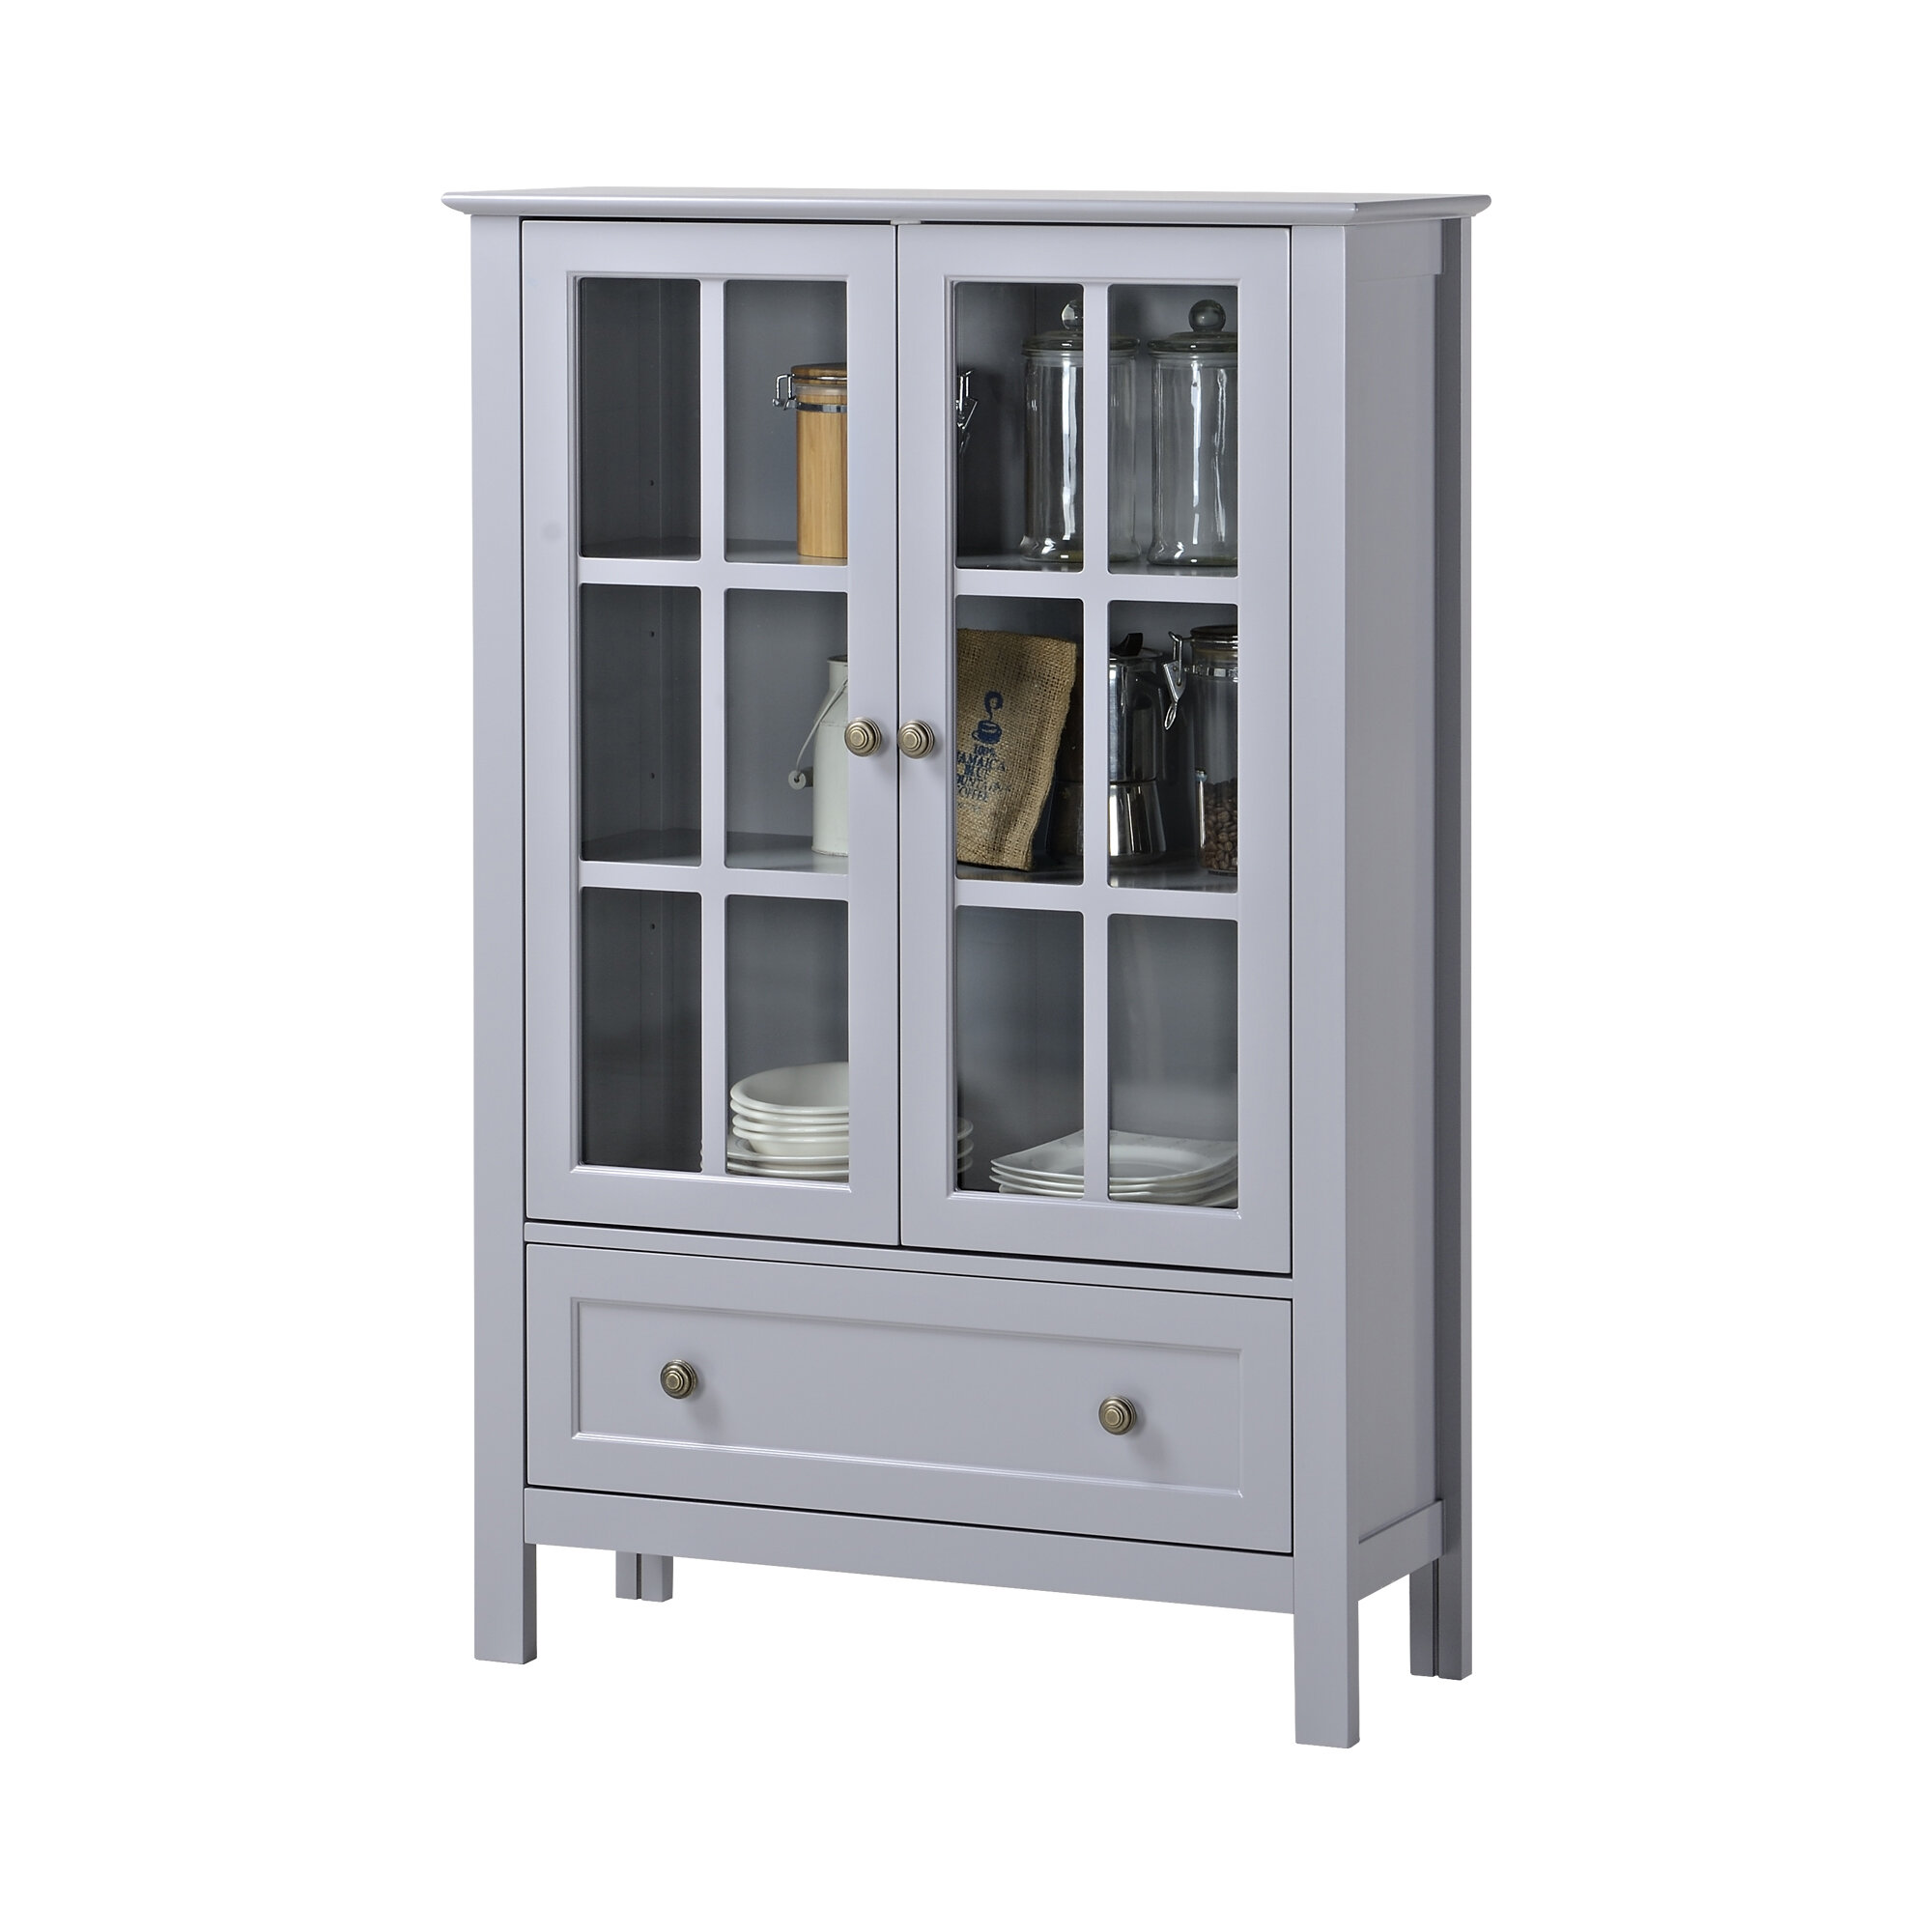 cabinet of kitchen woodthroom stand picture top storage size full cheap tall alone cabinets wide with design extra pantry slim doors